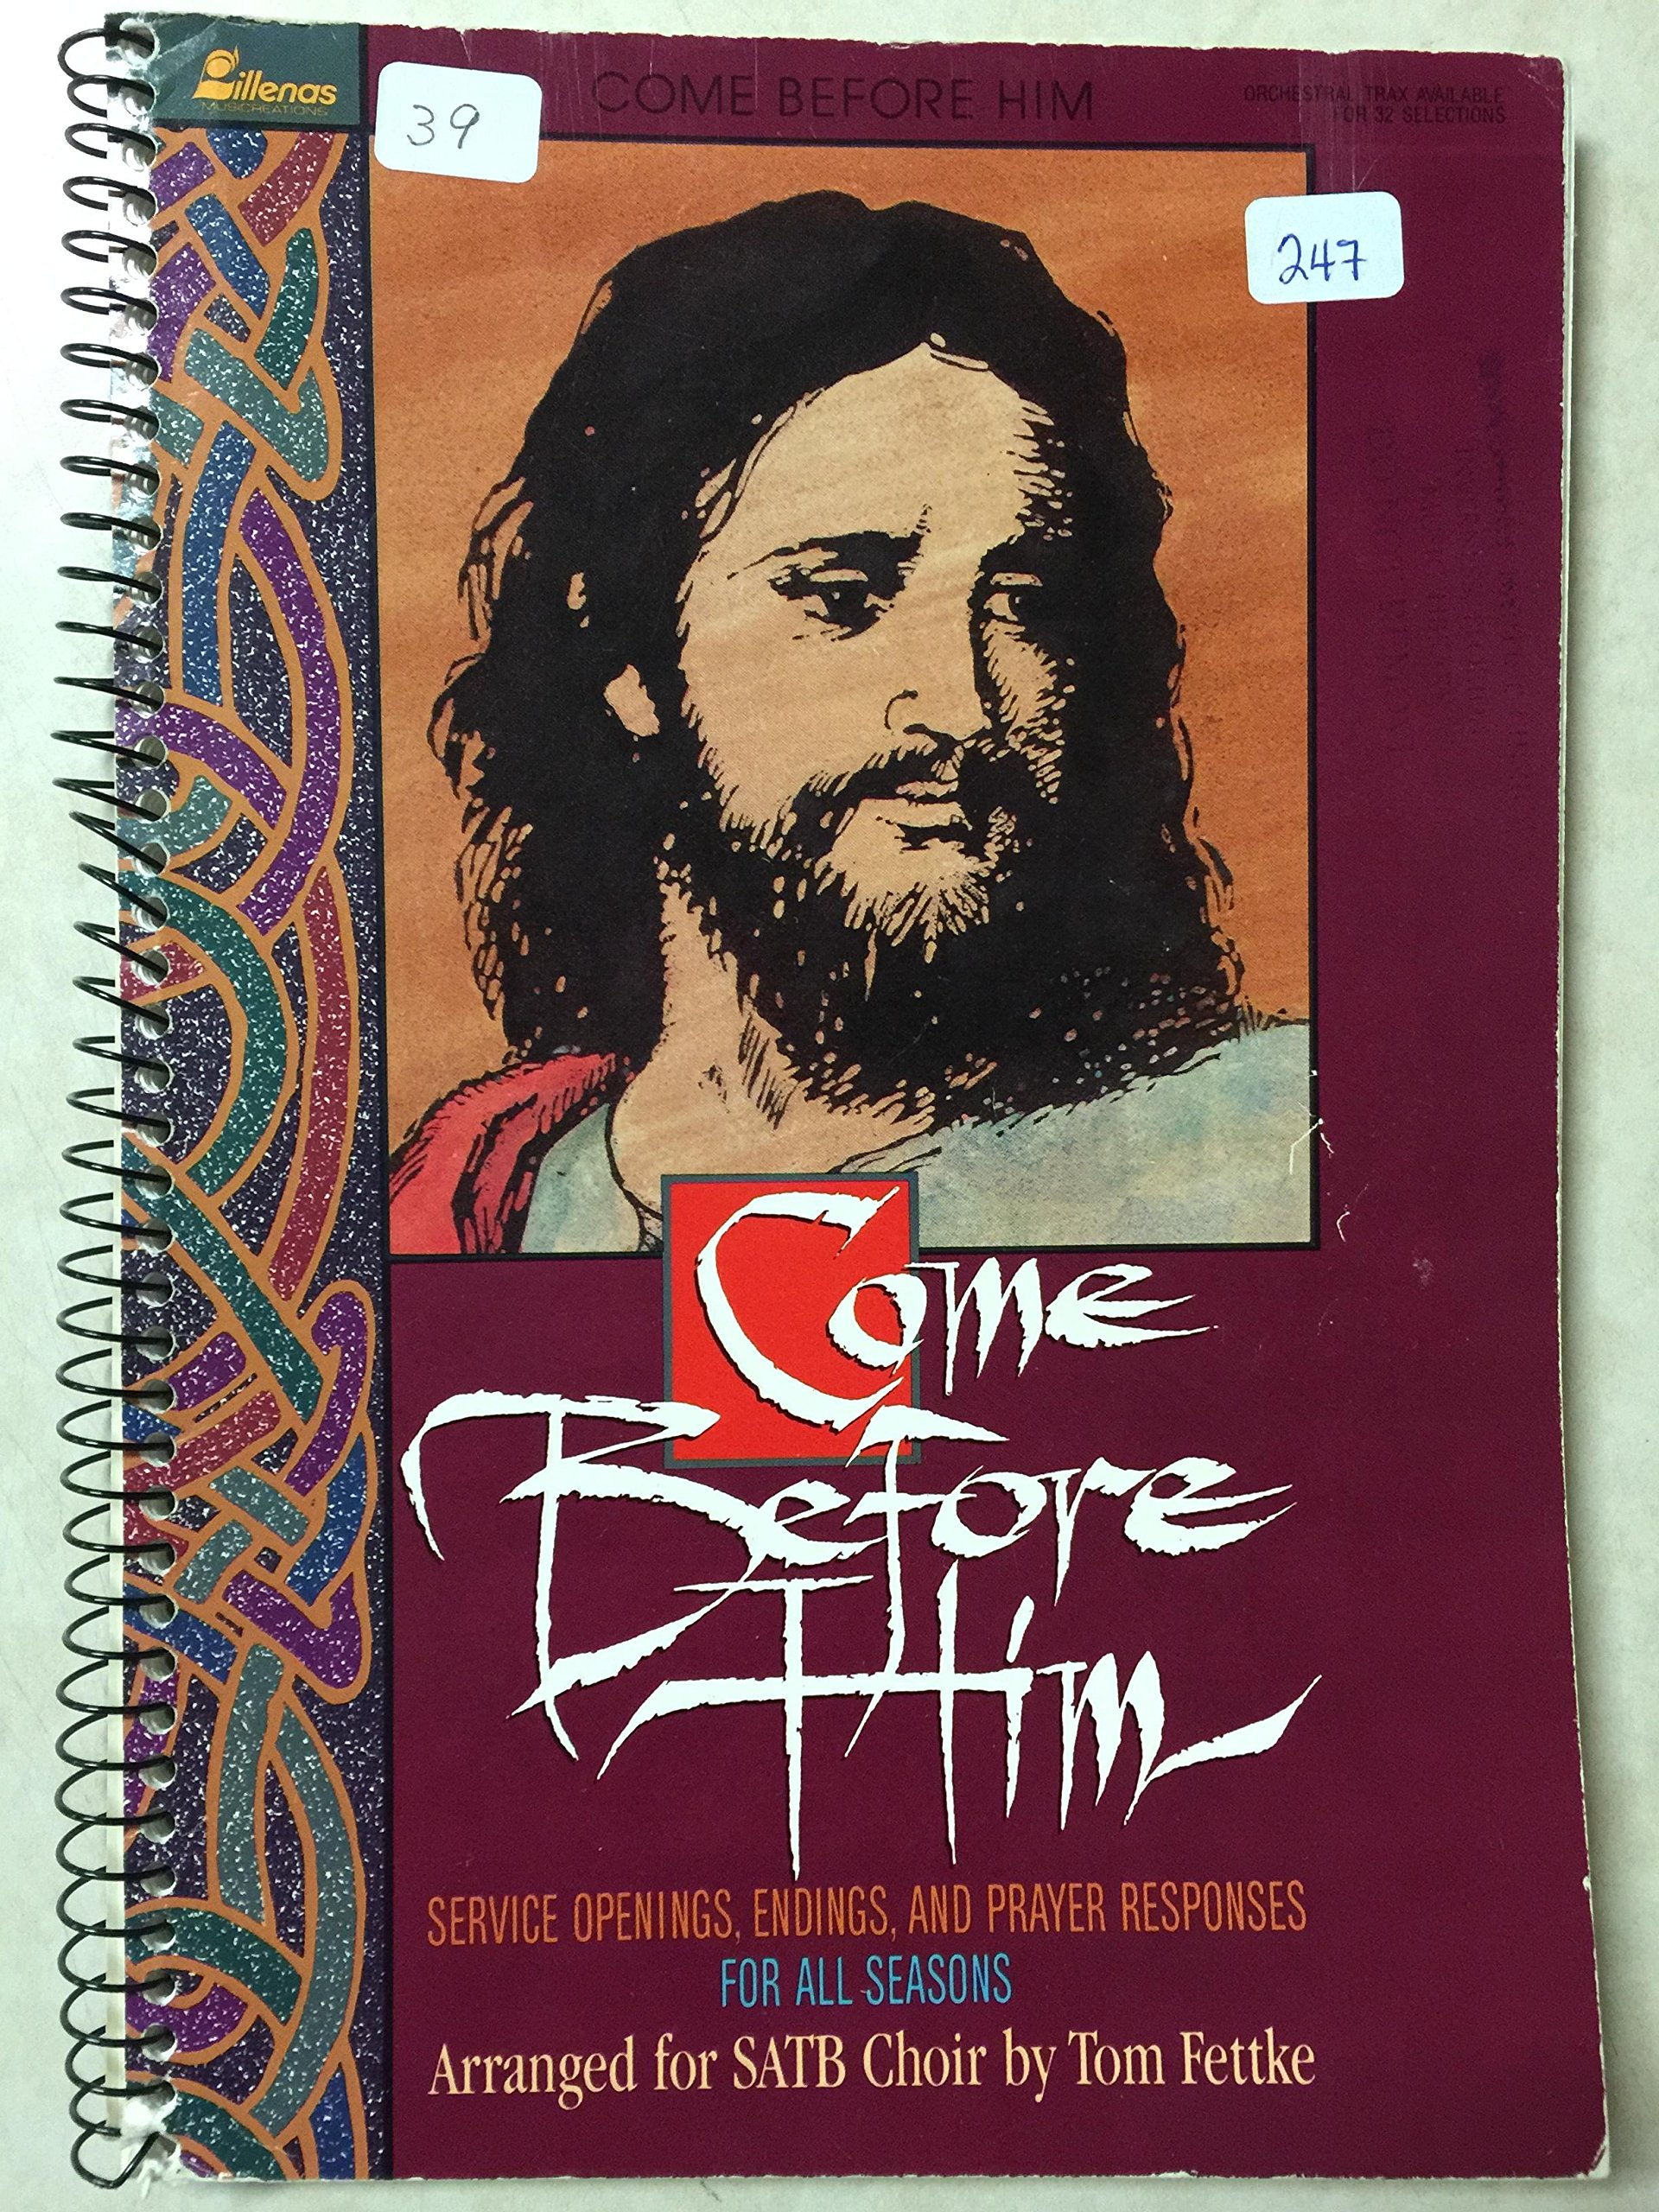 Come Before Him: Service Openings, Endings, and Prayer Responses for All Seasons